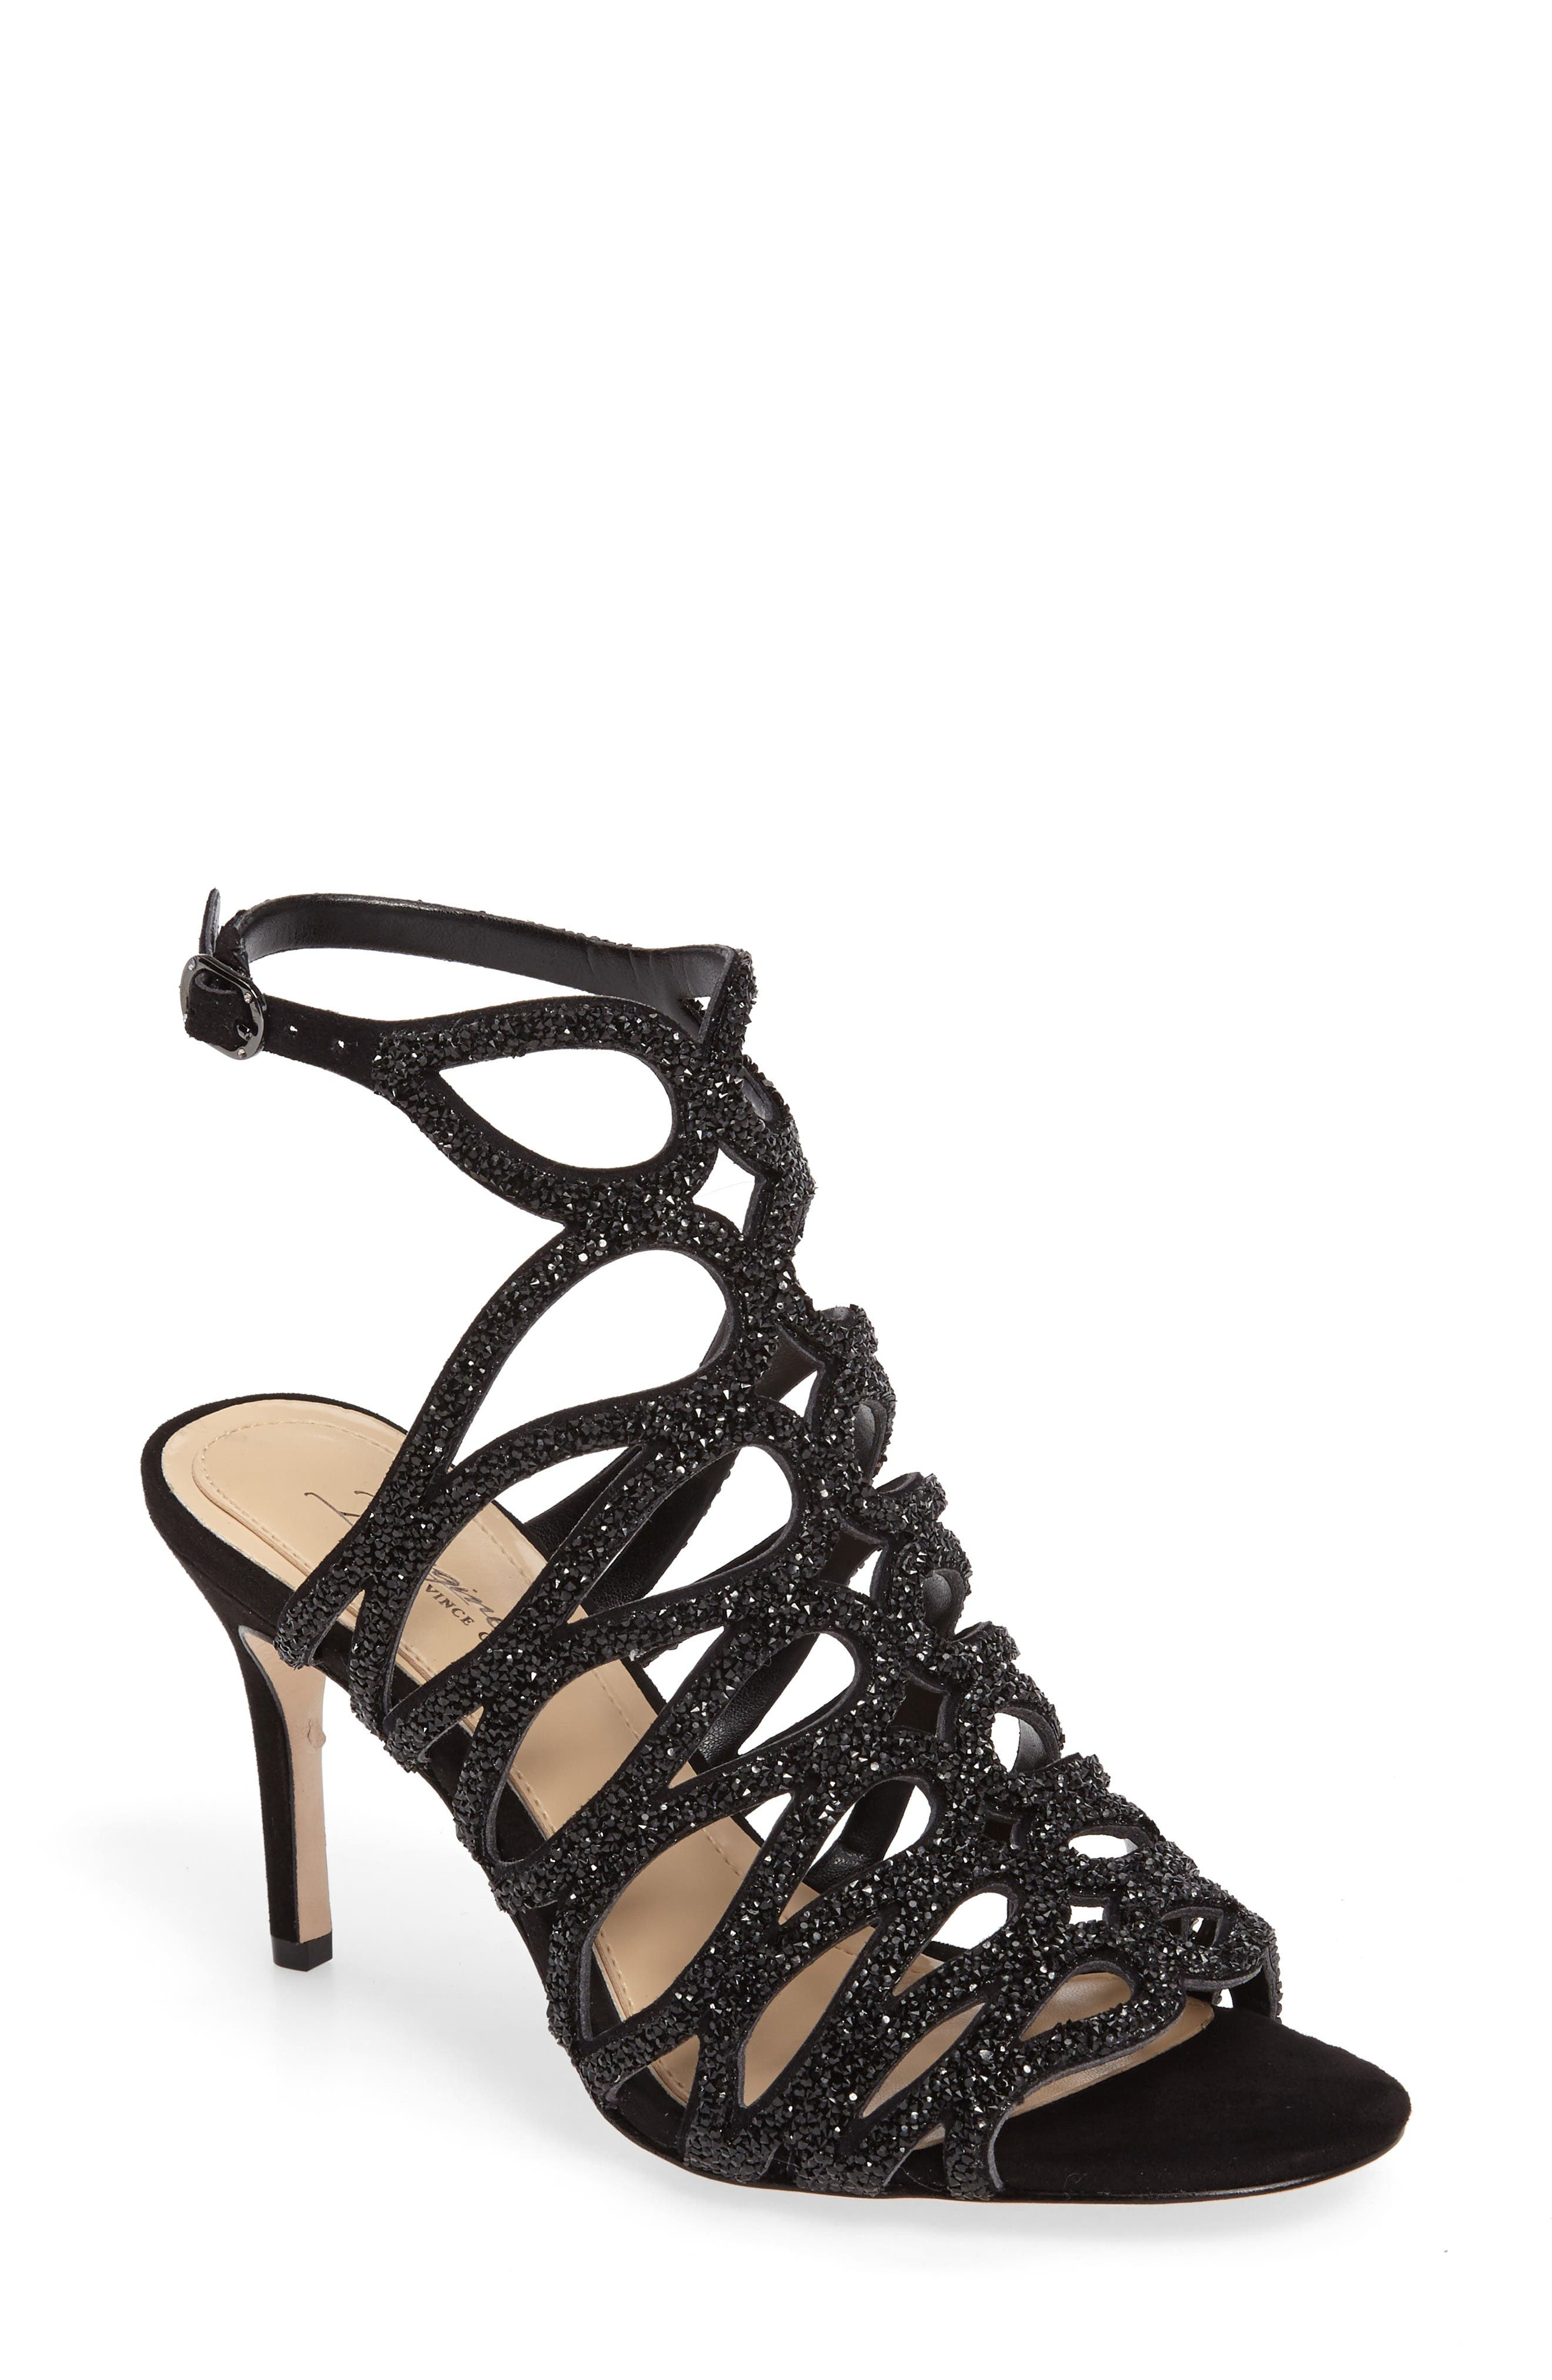 IMAGINE BY VINCE CAMUTO Plash Glitter Cage Sandal